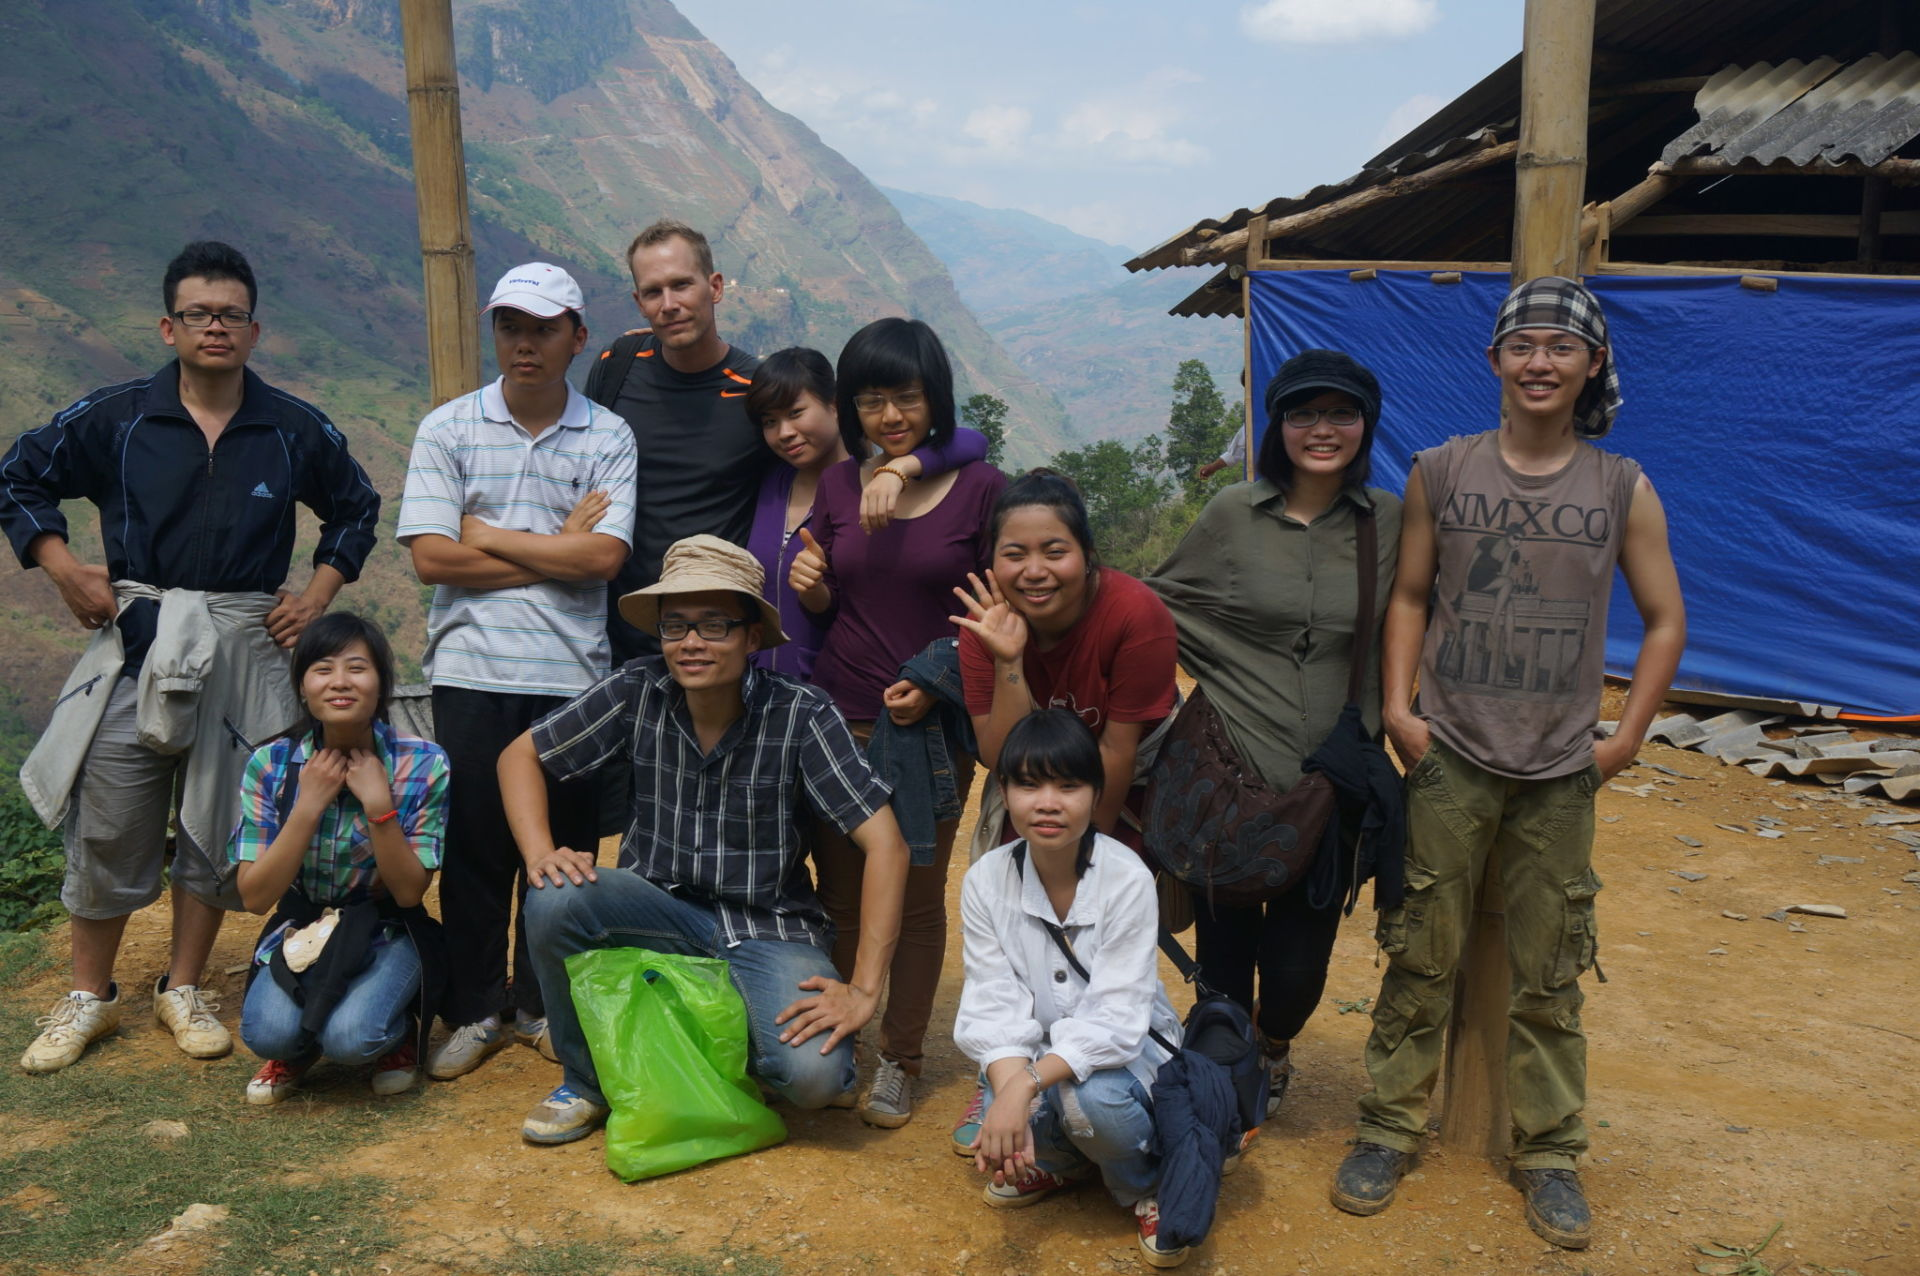 This is the Feed Starving People local team based in Hanoi Vietnam. They have returned to Si Ma Cai and participated in missions in Son La Province of Northern Vietnam (Si Ma Cai, Northern Vietnam).